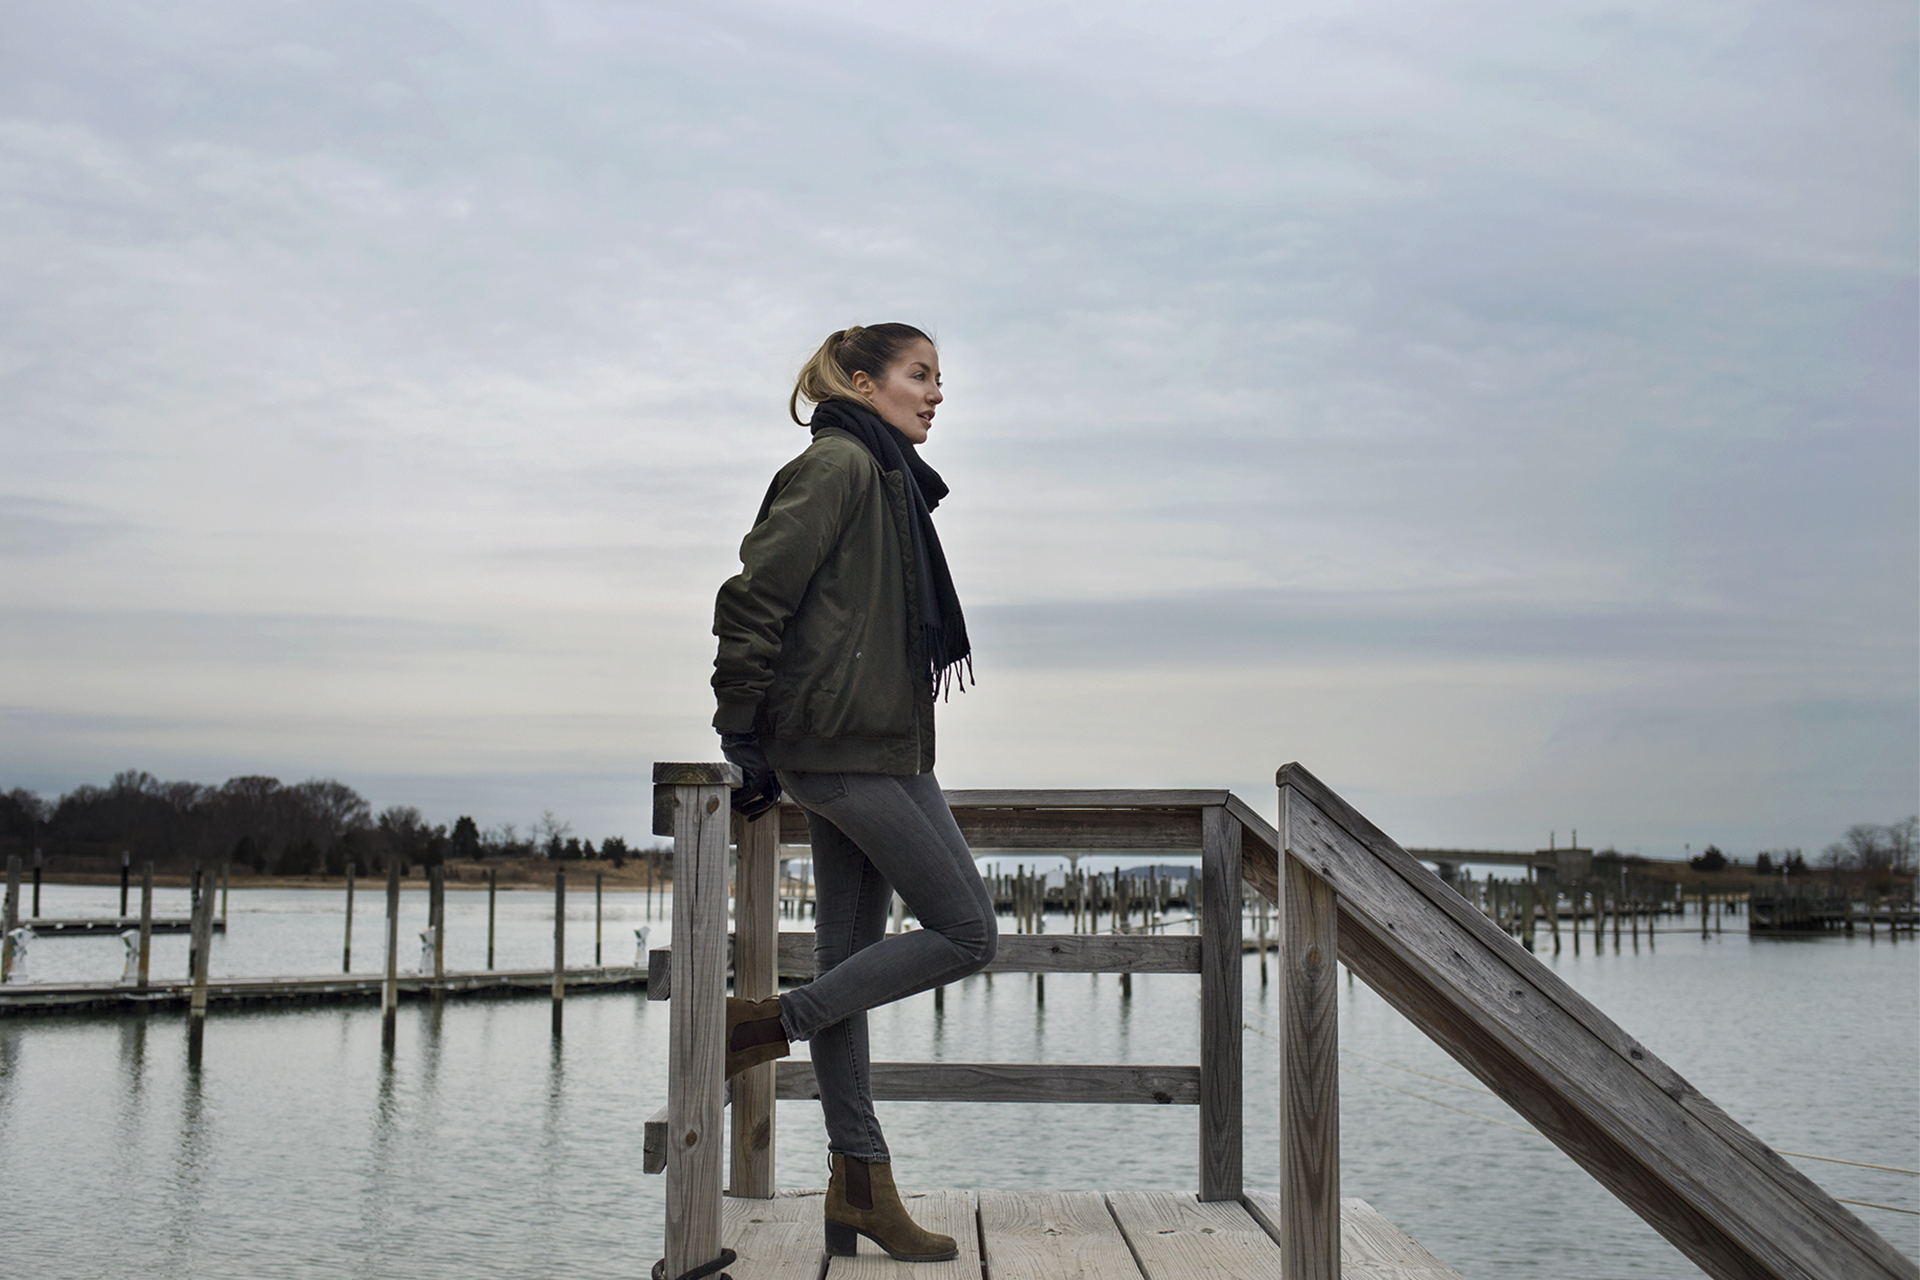 Winter style in the Hamptons at Sag Harbor